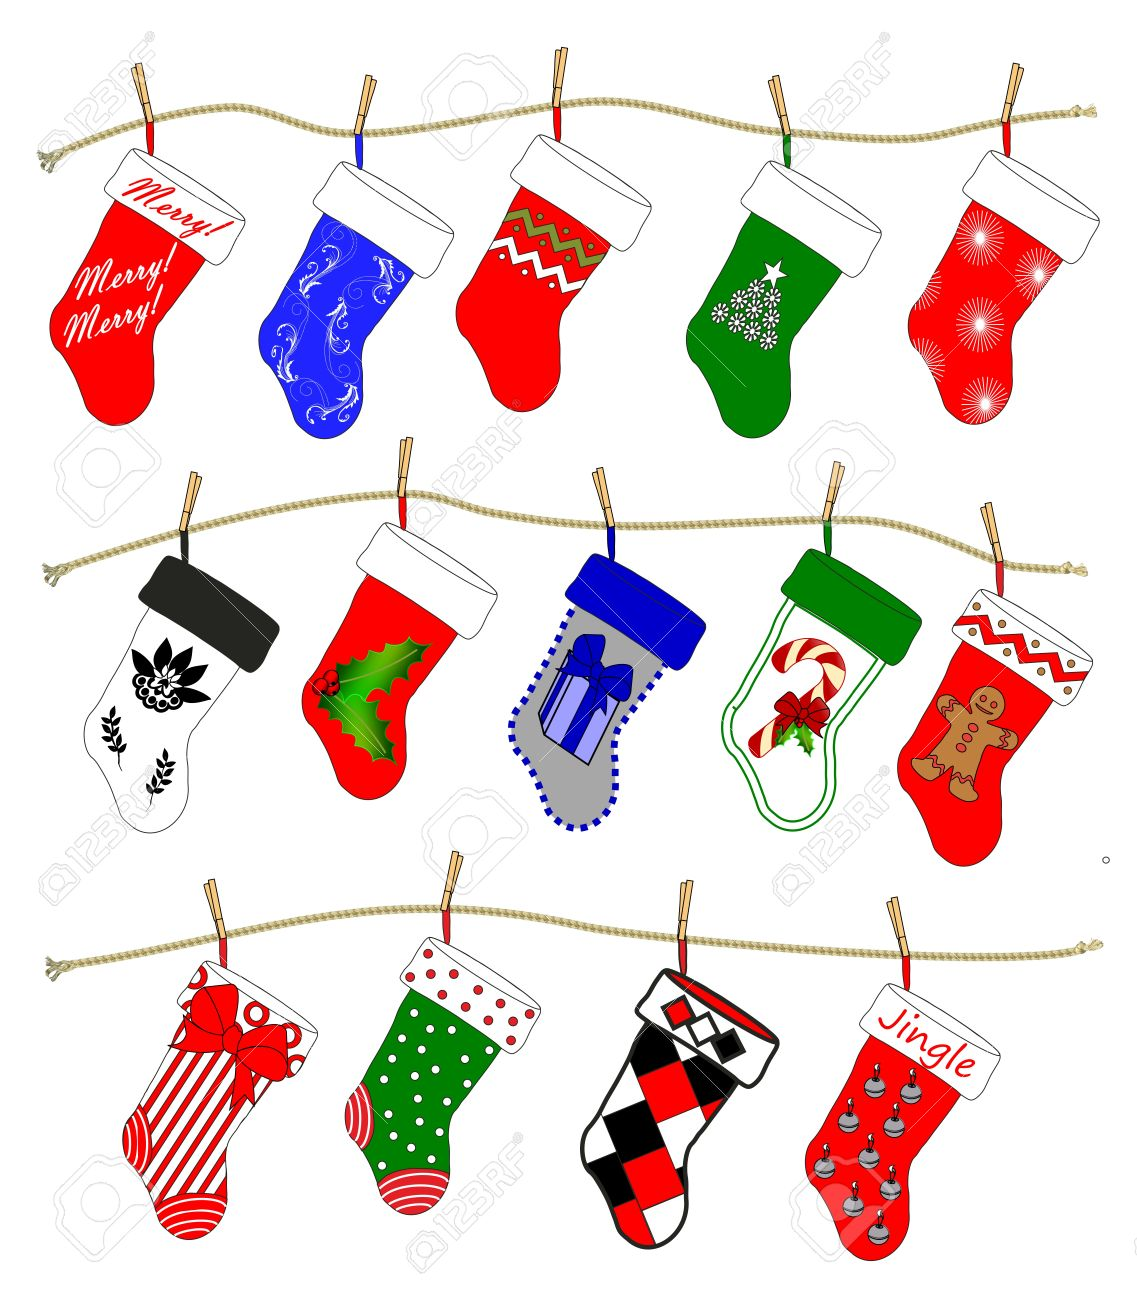 Drawings Of Christmas Stockings.A Drawing Of Fourteen Christmas Stockings In Various Holiday